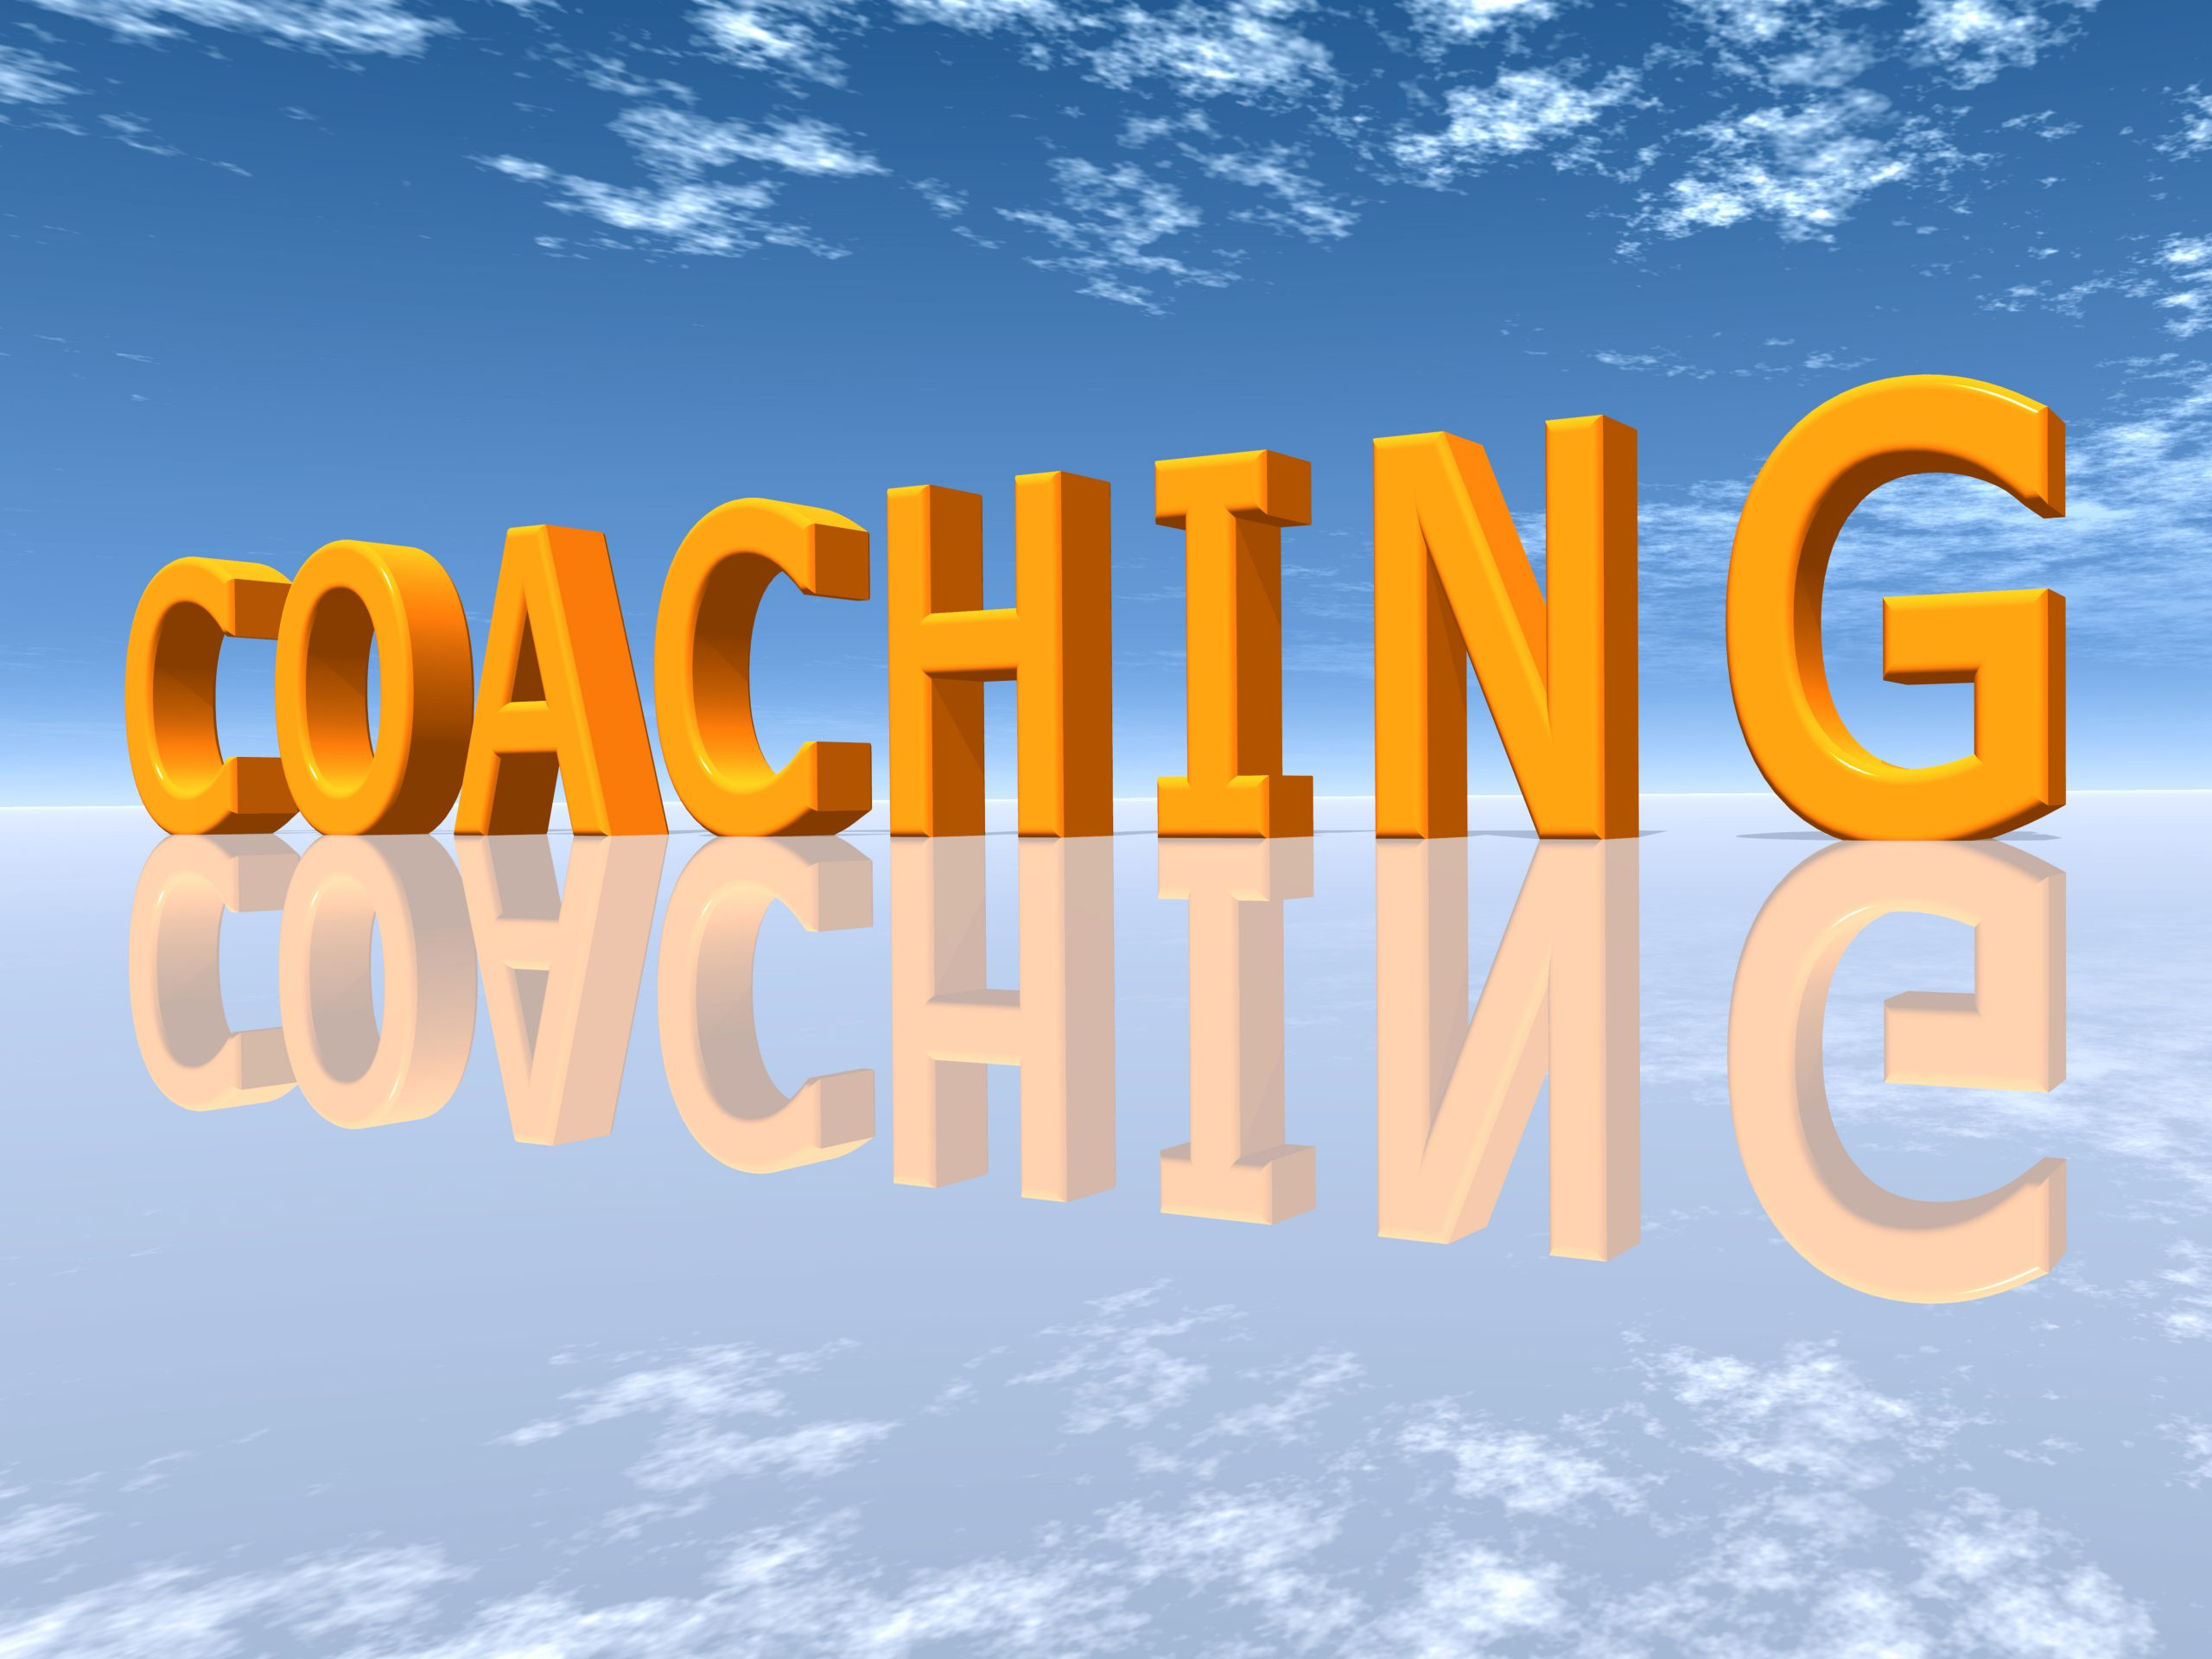 Questions for Coaching the Being from the Elena Coaching Mario Blog